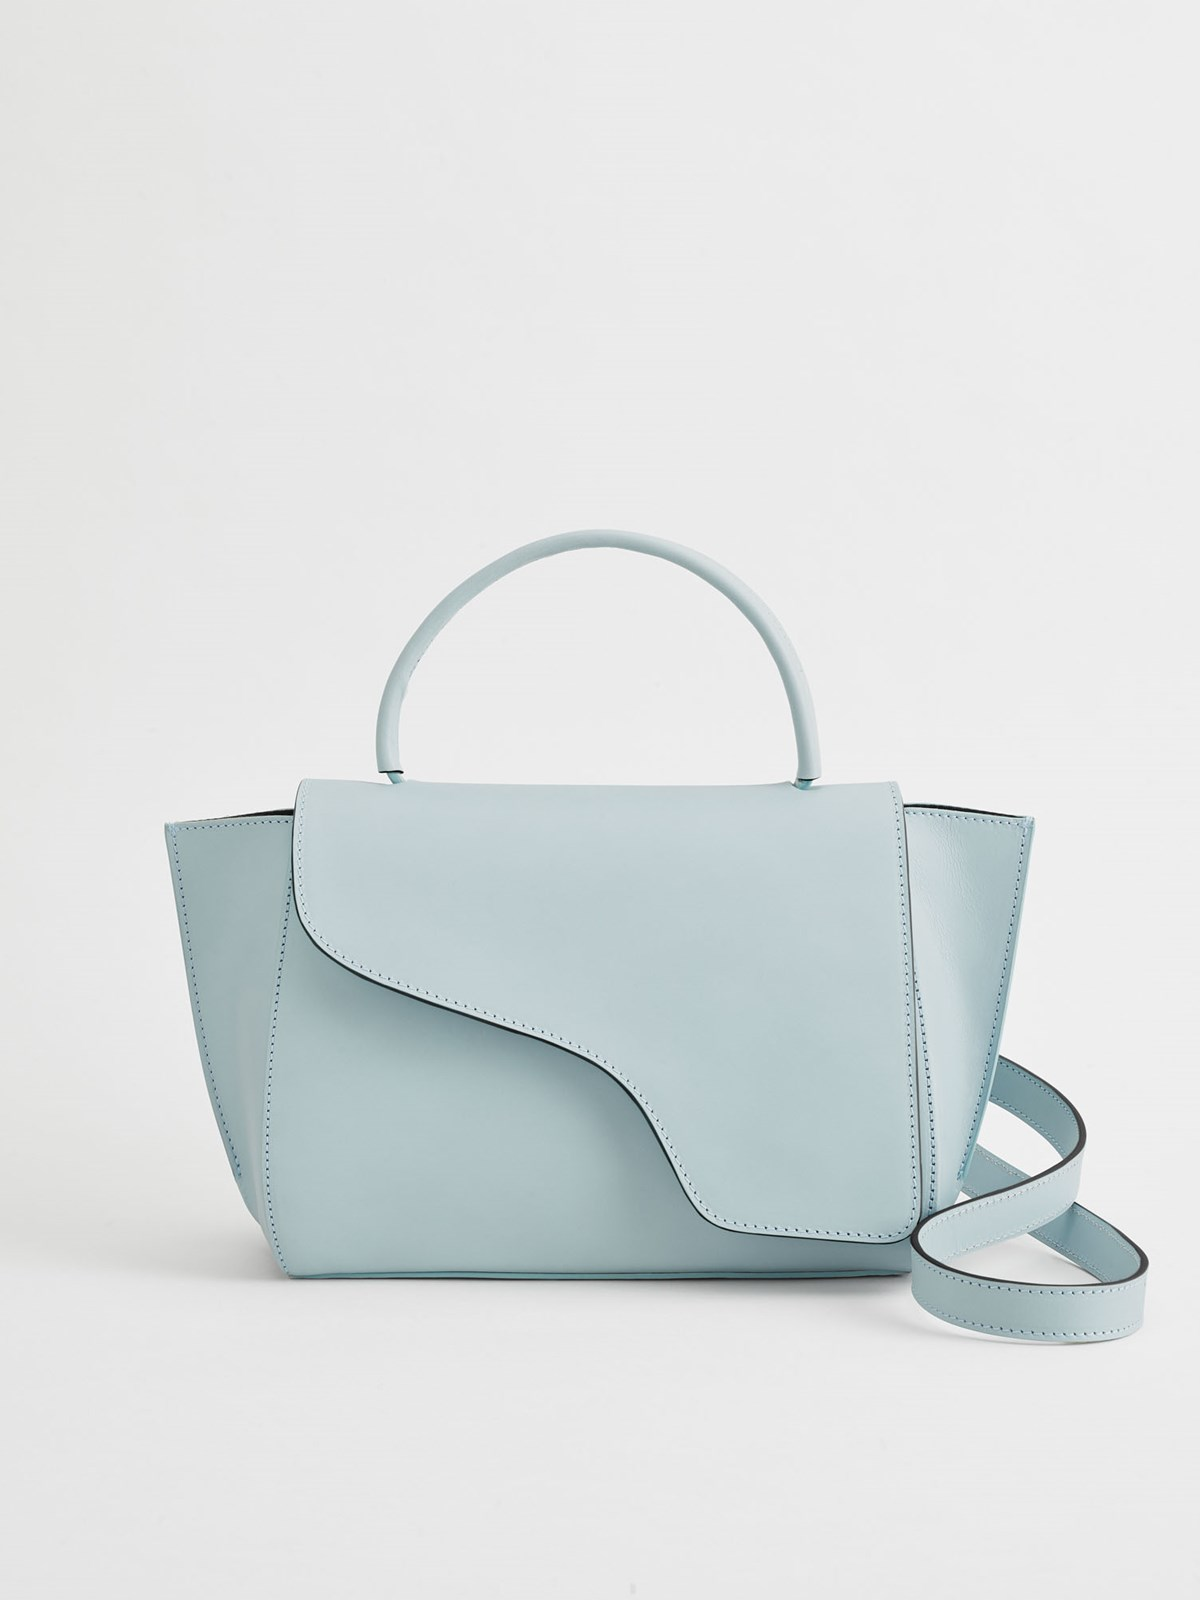 Arezzo Light Blue Handbag